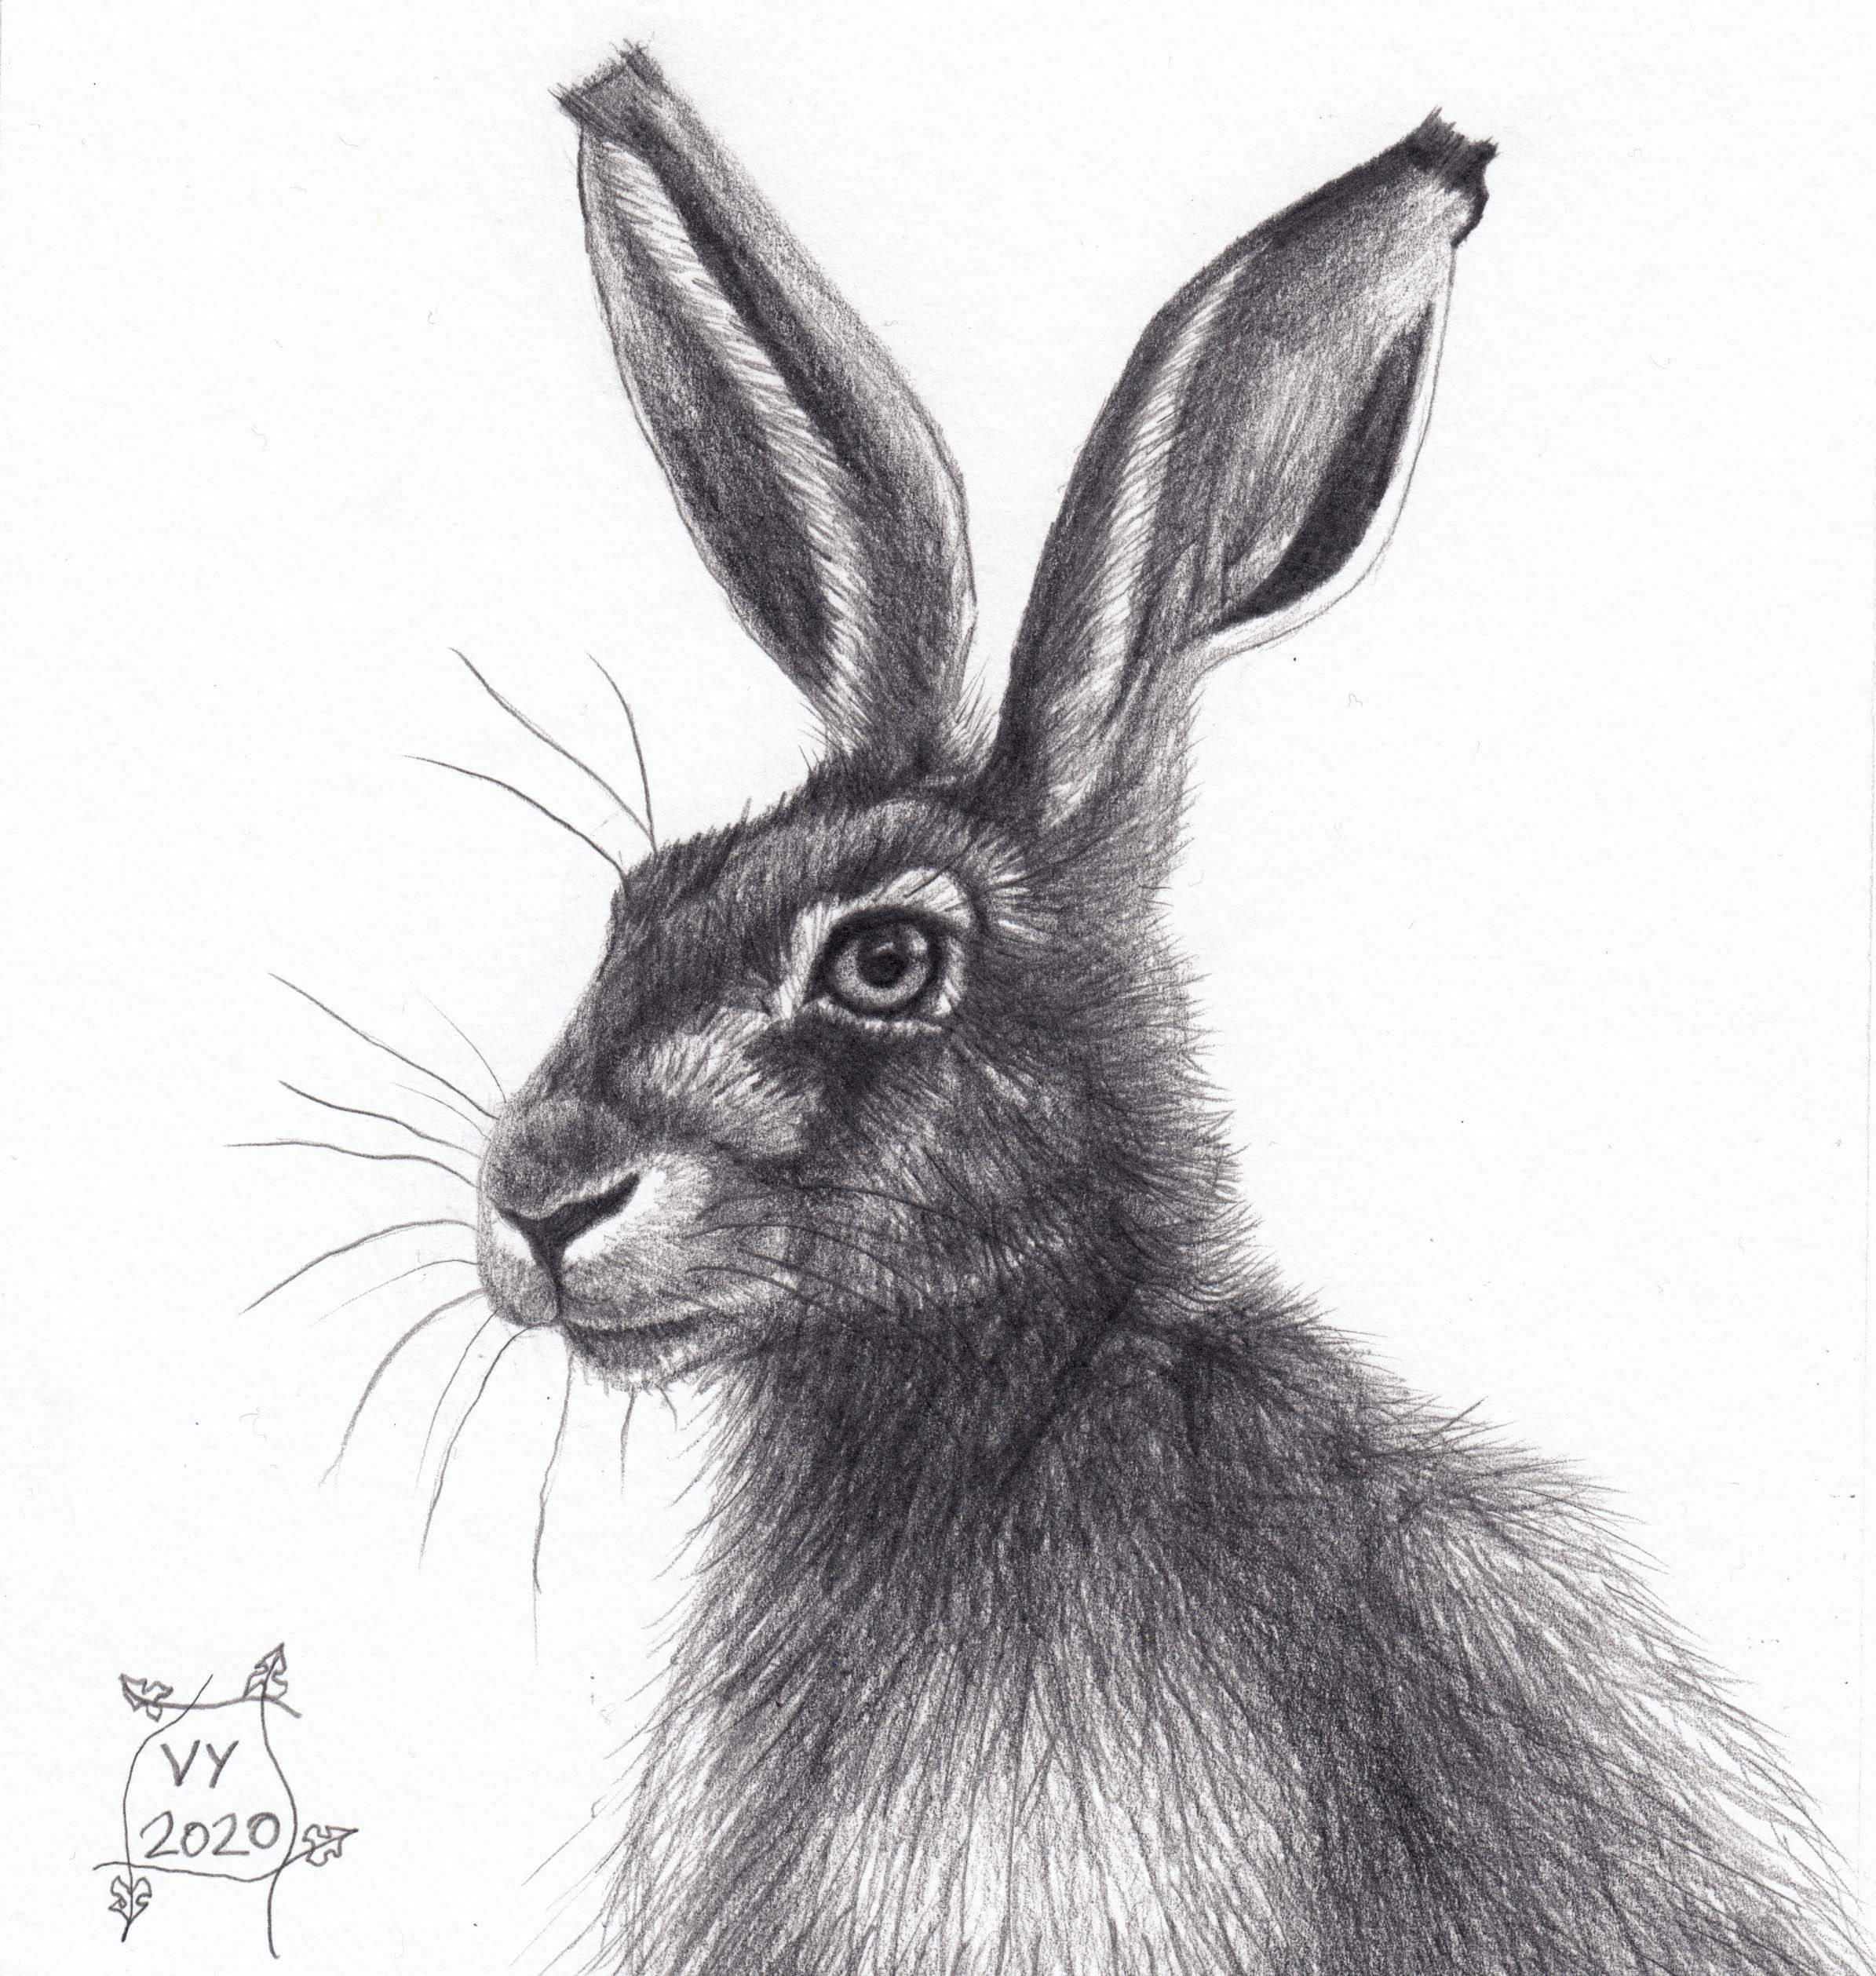 Hare pencil drawing number 2